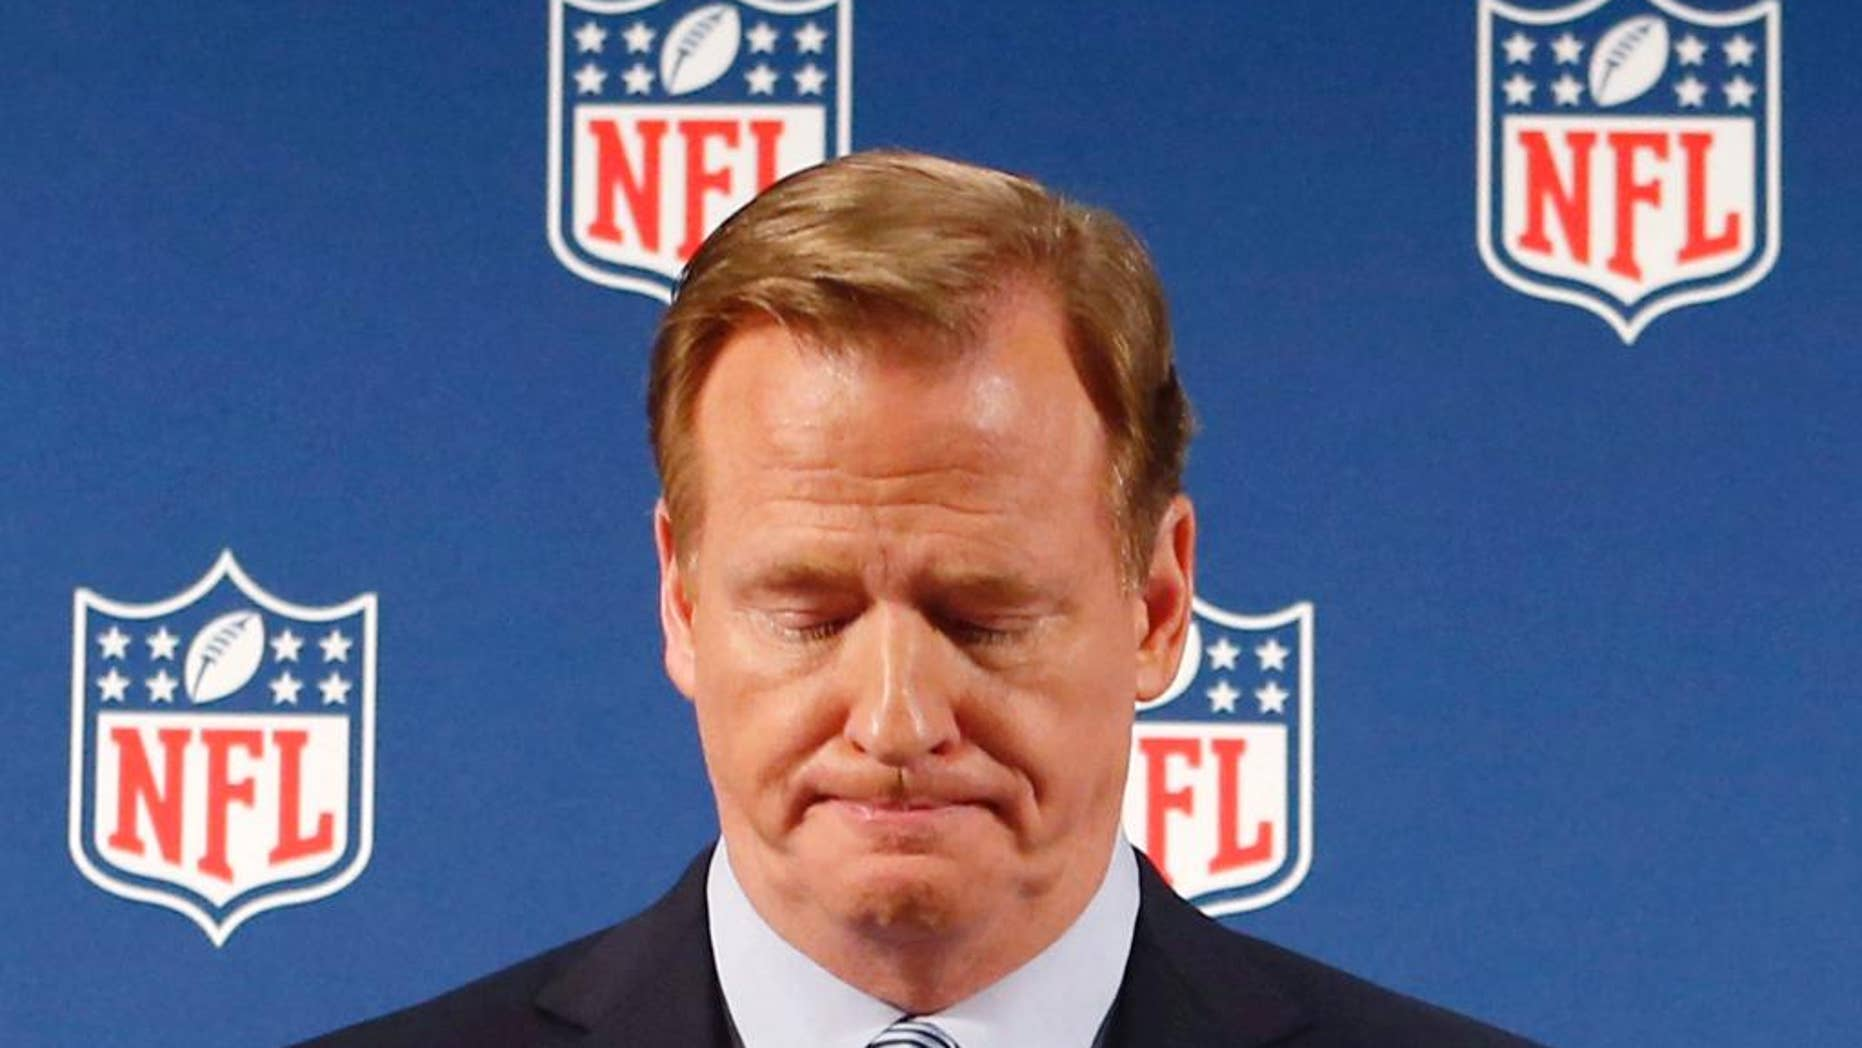 "FILE - In this Sept. 19, 2014, file photo, NFL Commissioner Roger Goodell pauses as he speaks during a news conference in New York.  Rice has won the appeal of his indefinite suspension by the NFL, which has been ""vacated immediately,"" the players' union said Friday, Nov. 28, 2014. (AP Photo/Jason DeCrow, File)"